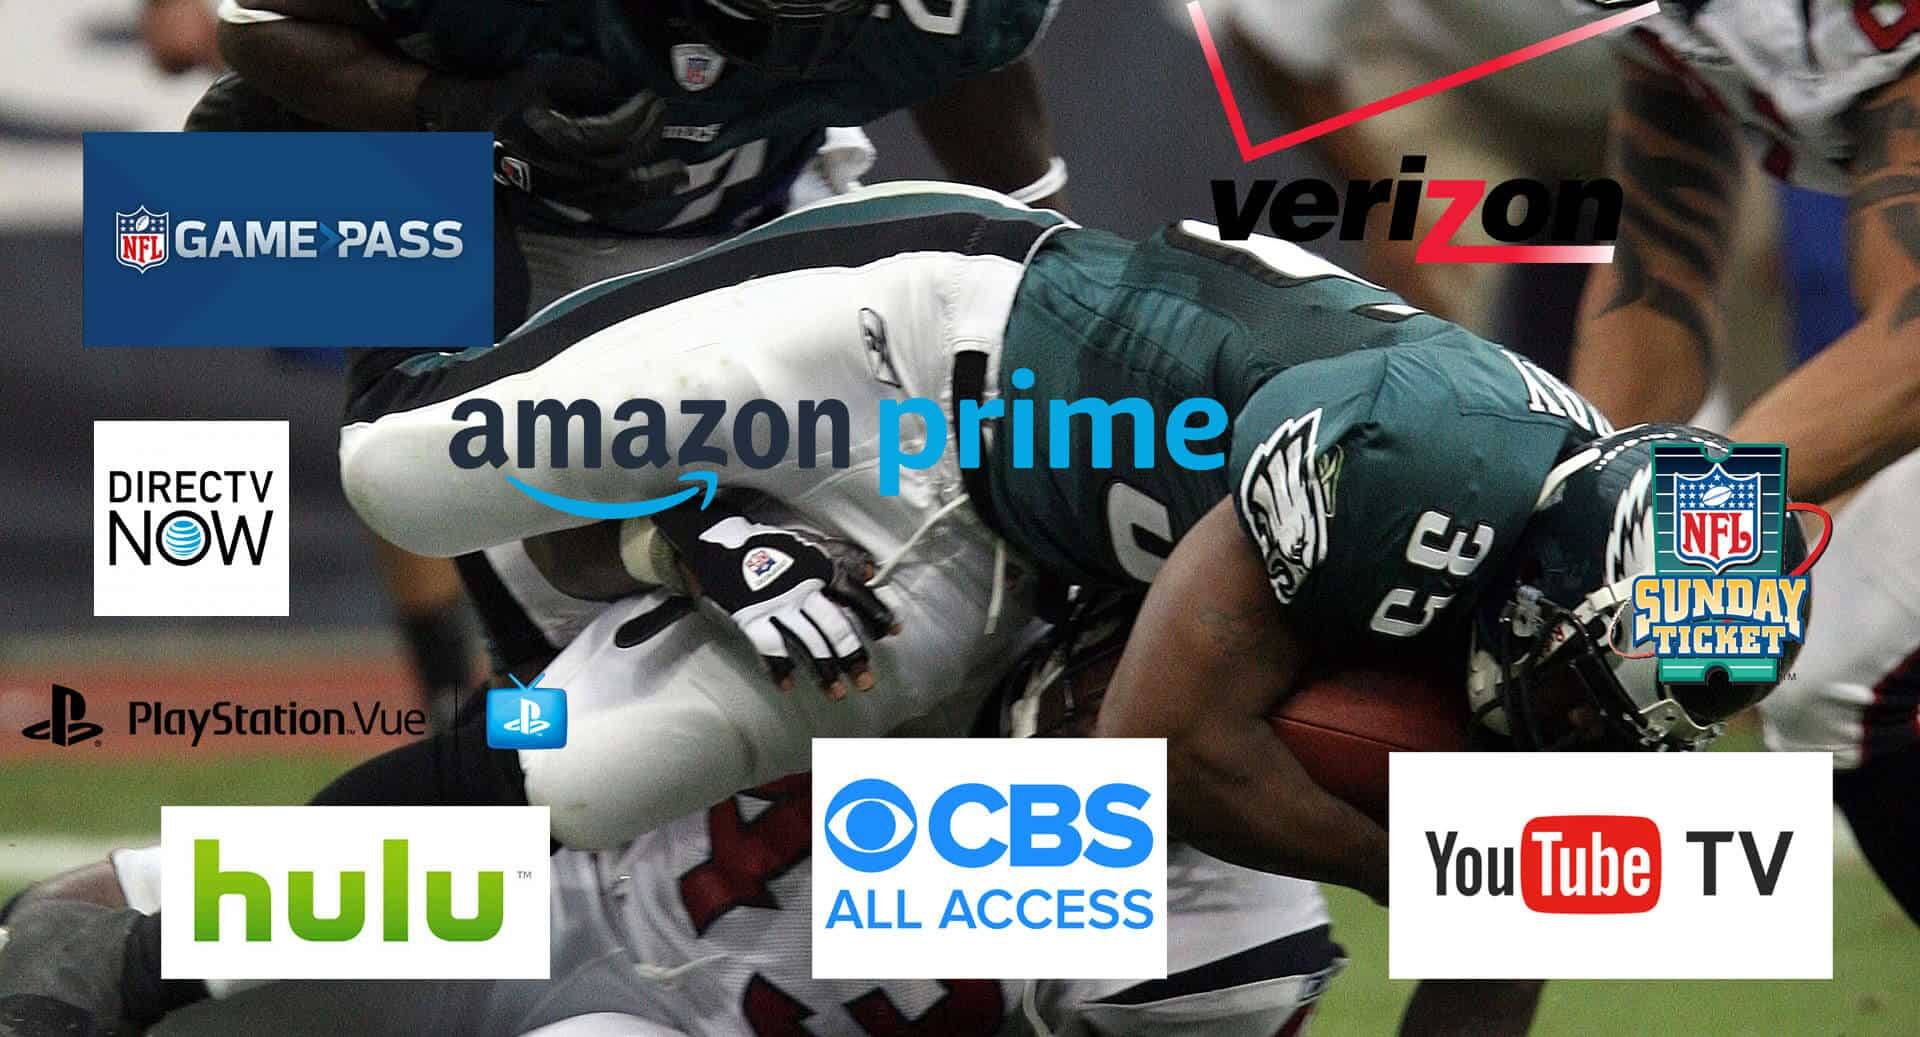 Complete guide to stream NFL games live in 2018 - TV, OTT